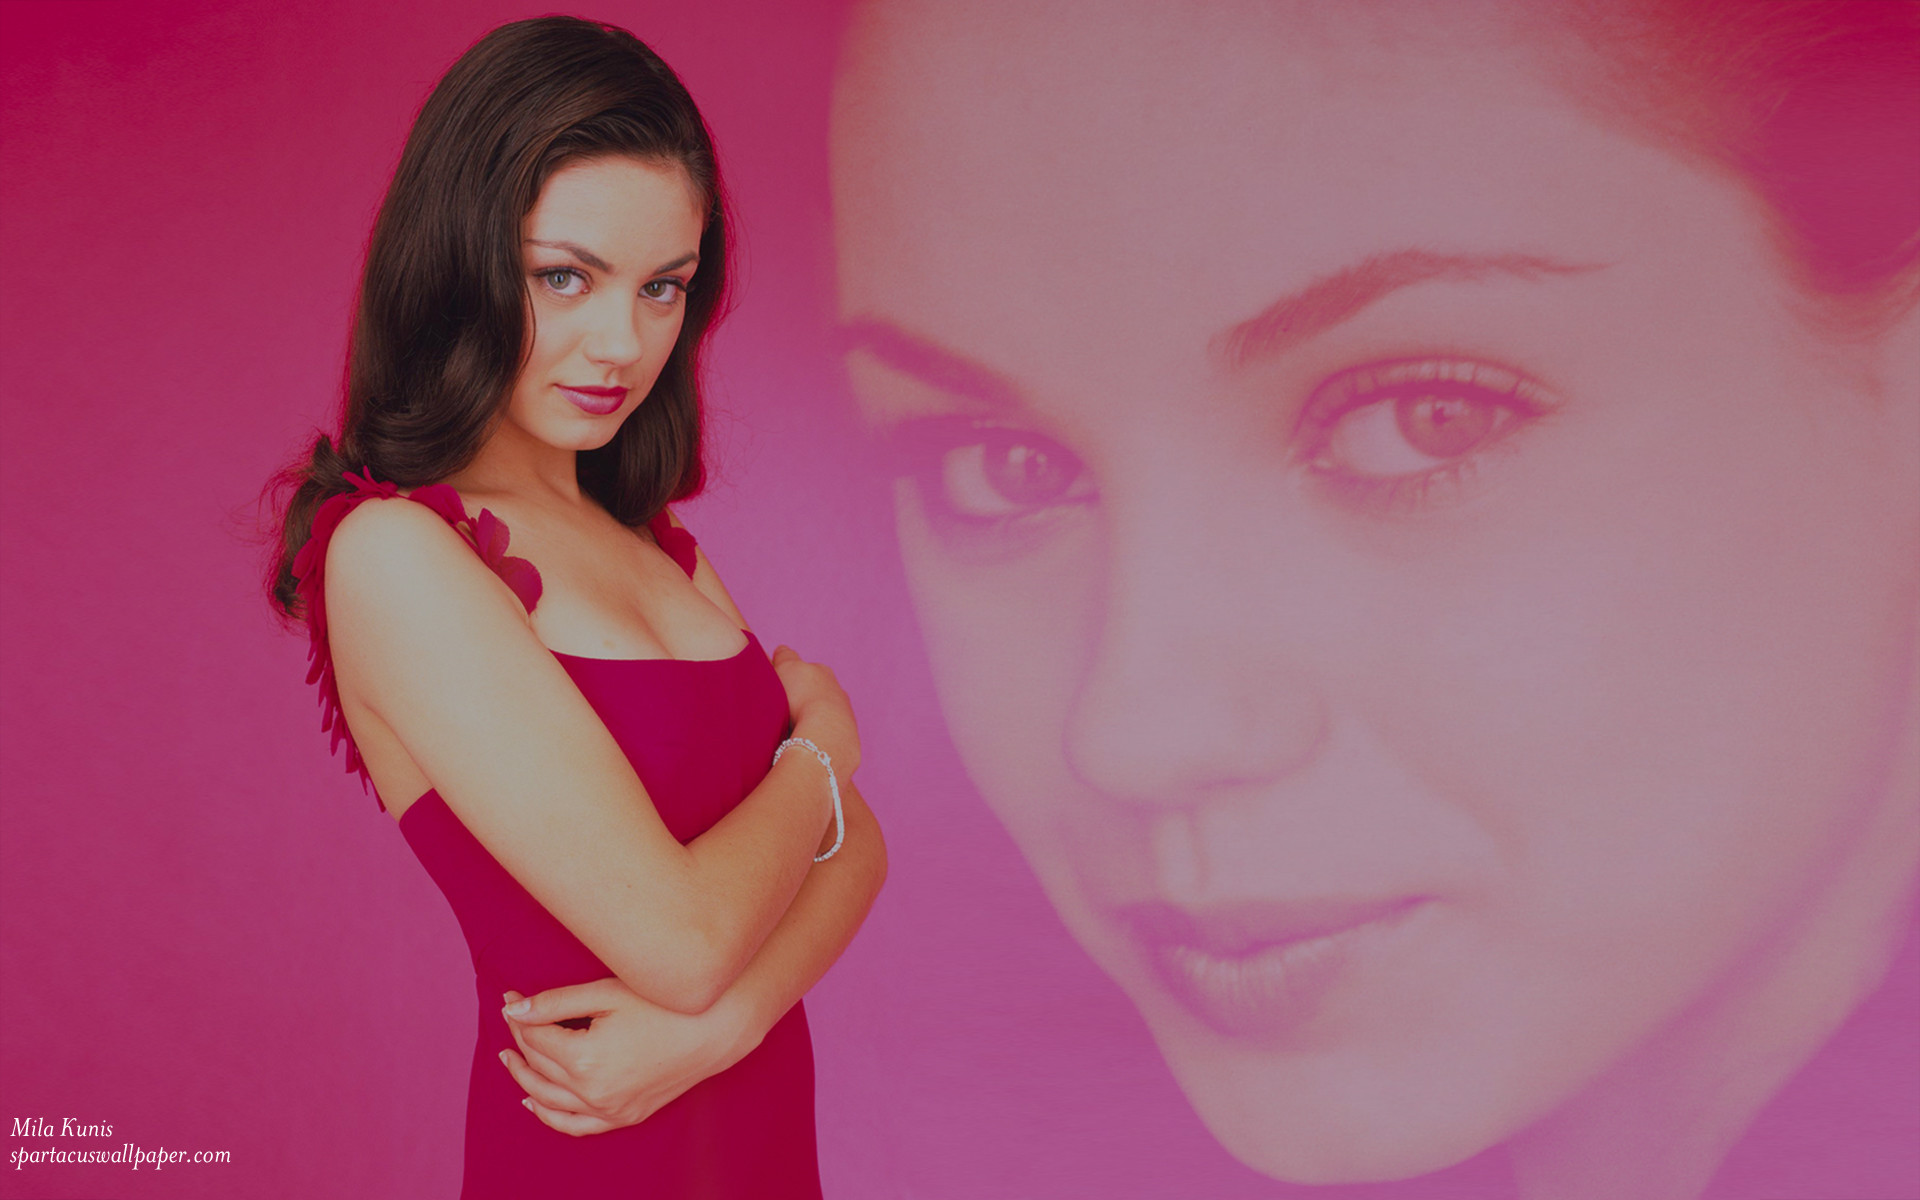 1920x1200 That 70s Show Wallpaper Source · Mila Kunis Desktop Backgrounds Mobile Home  Screens Spartacus